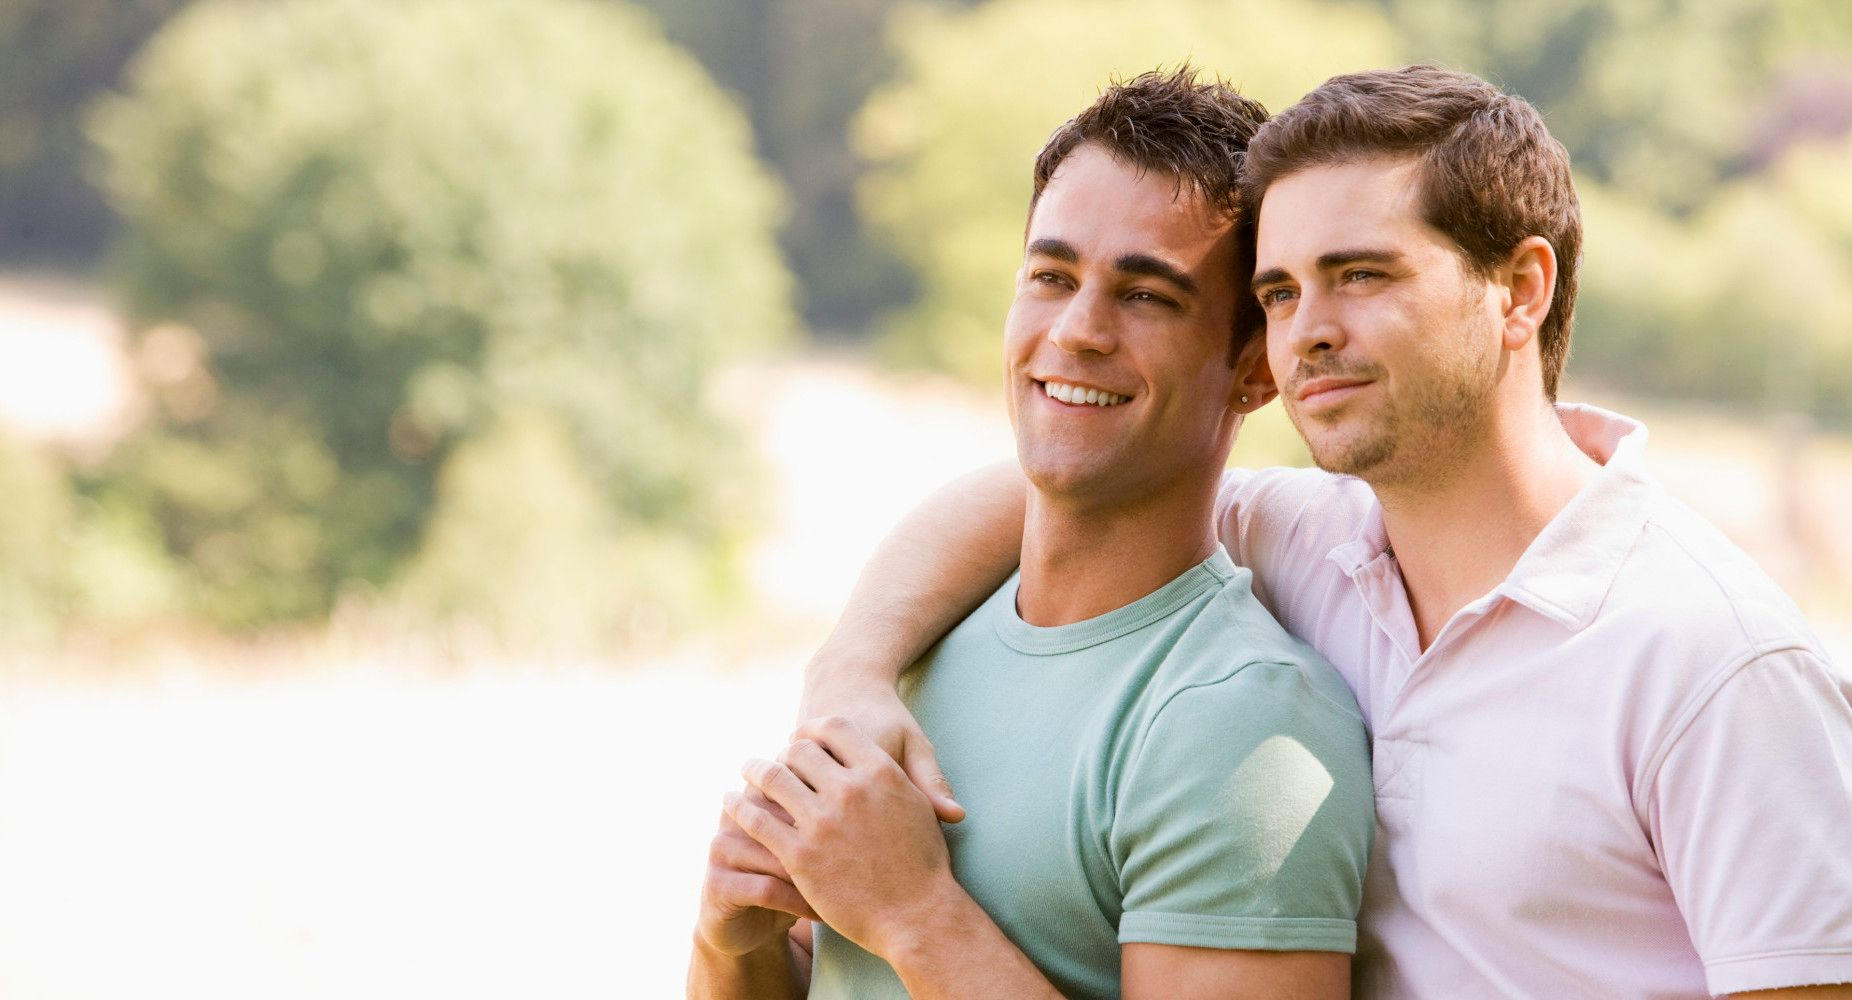 No one wants to meet me gay online dating